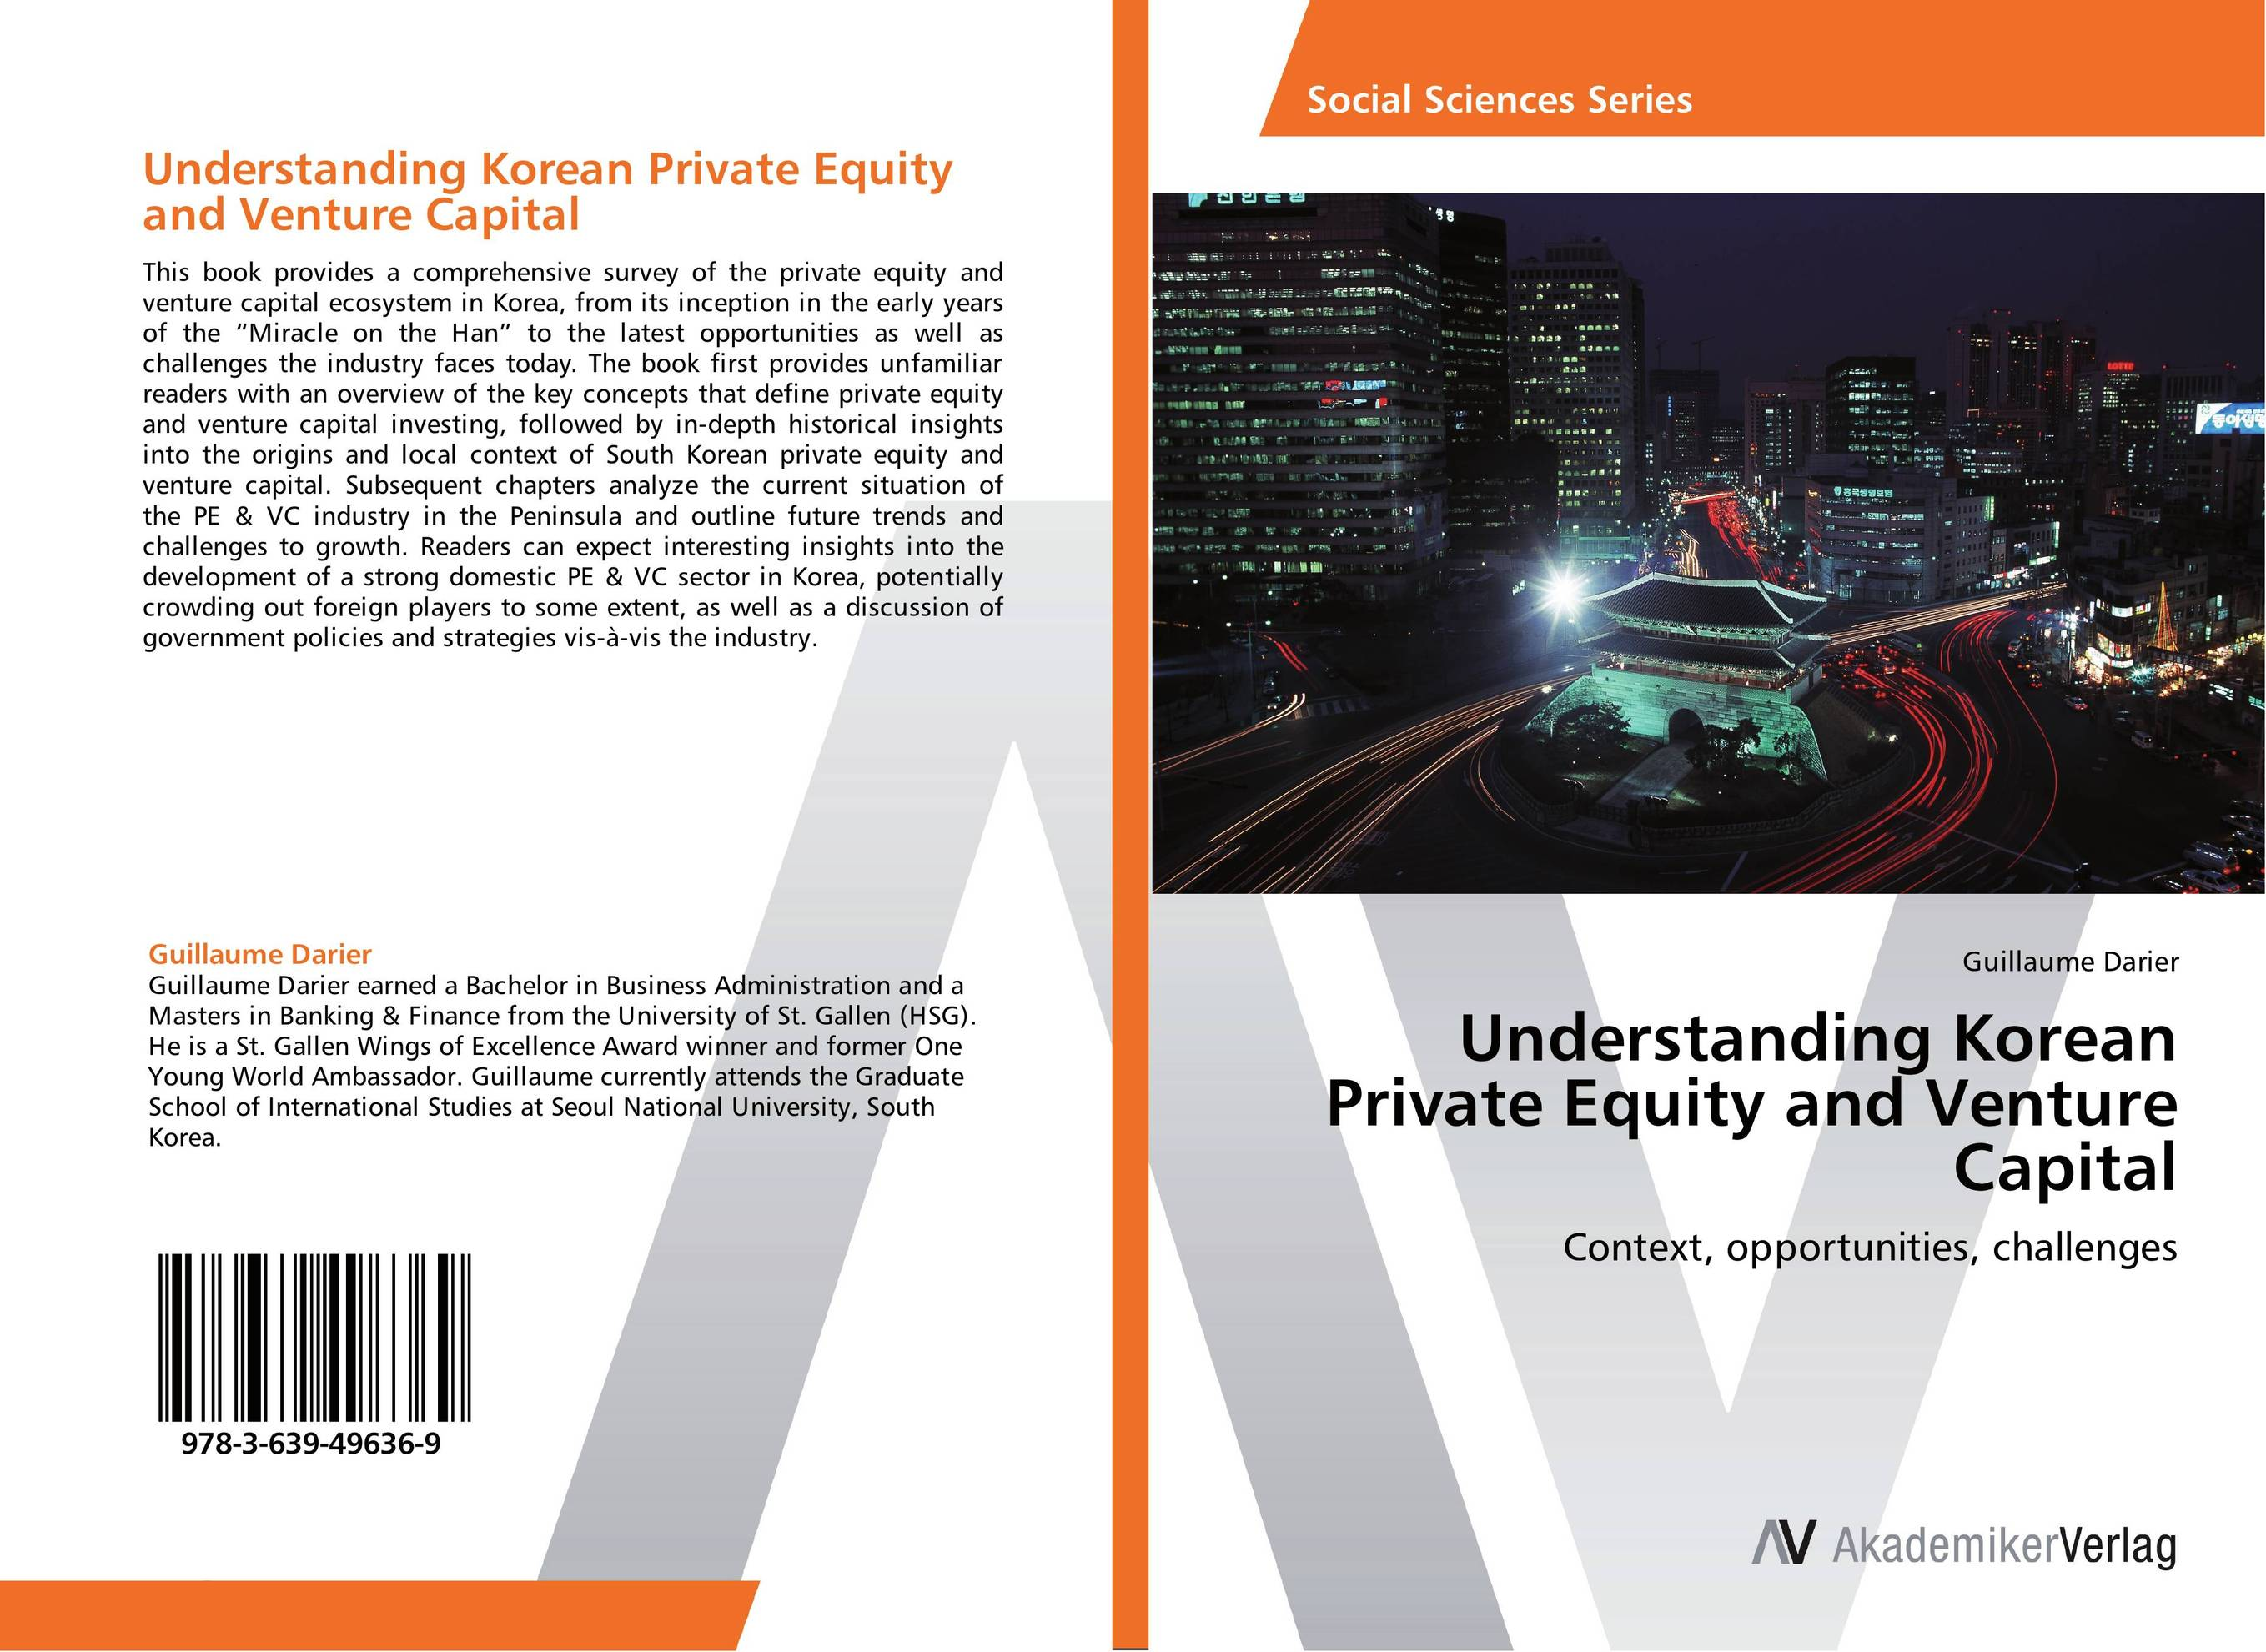 Understanding Korean Private Equity and Venture Capital